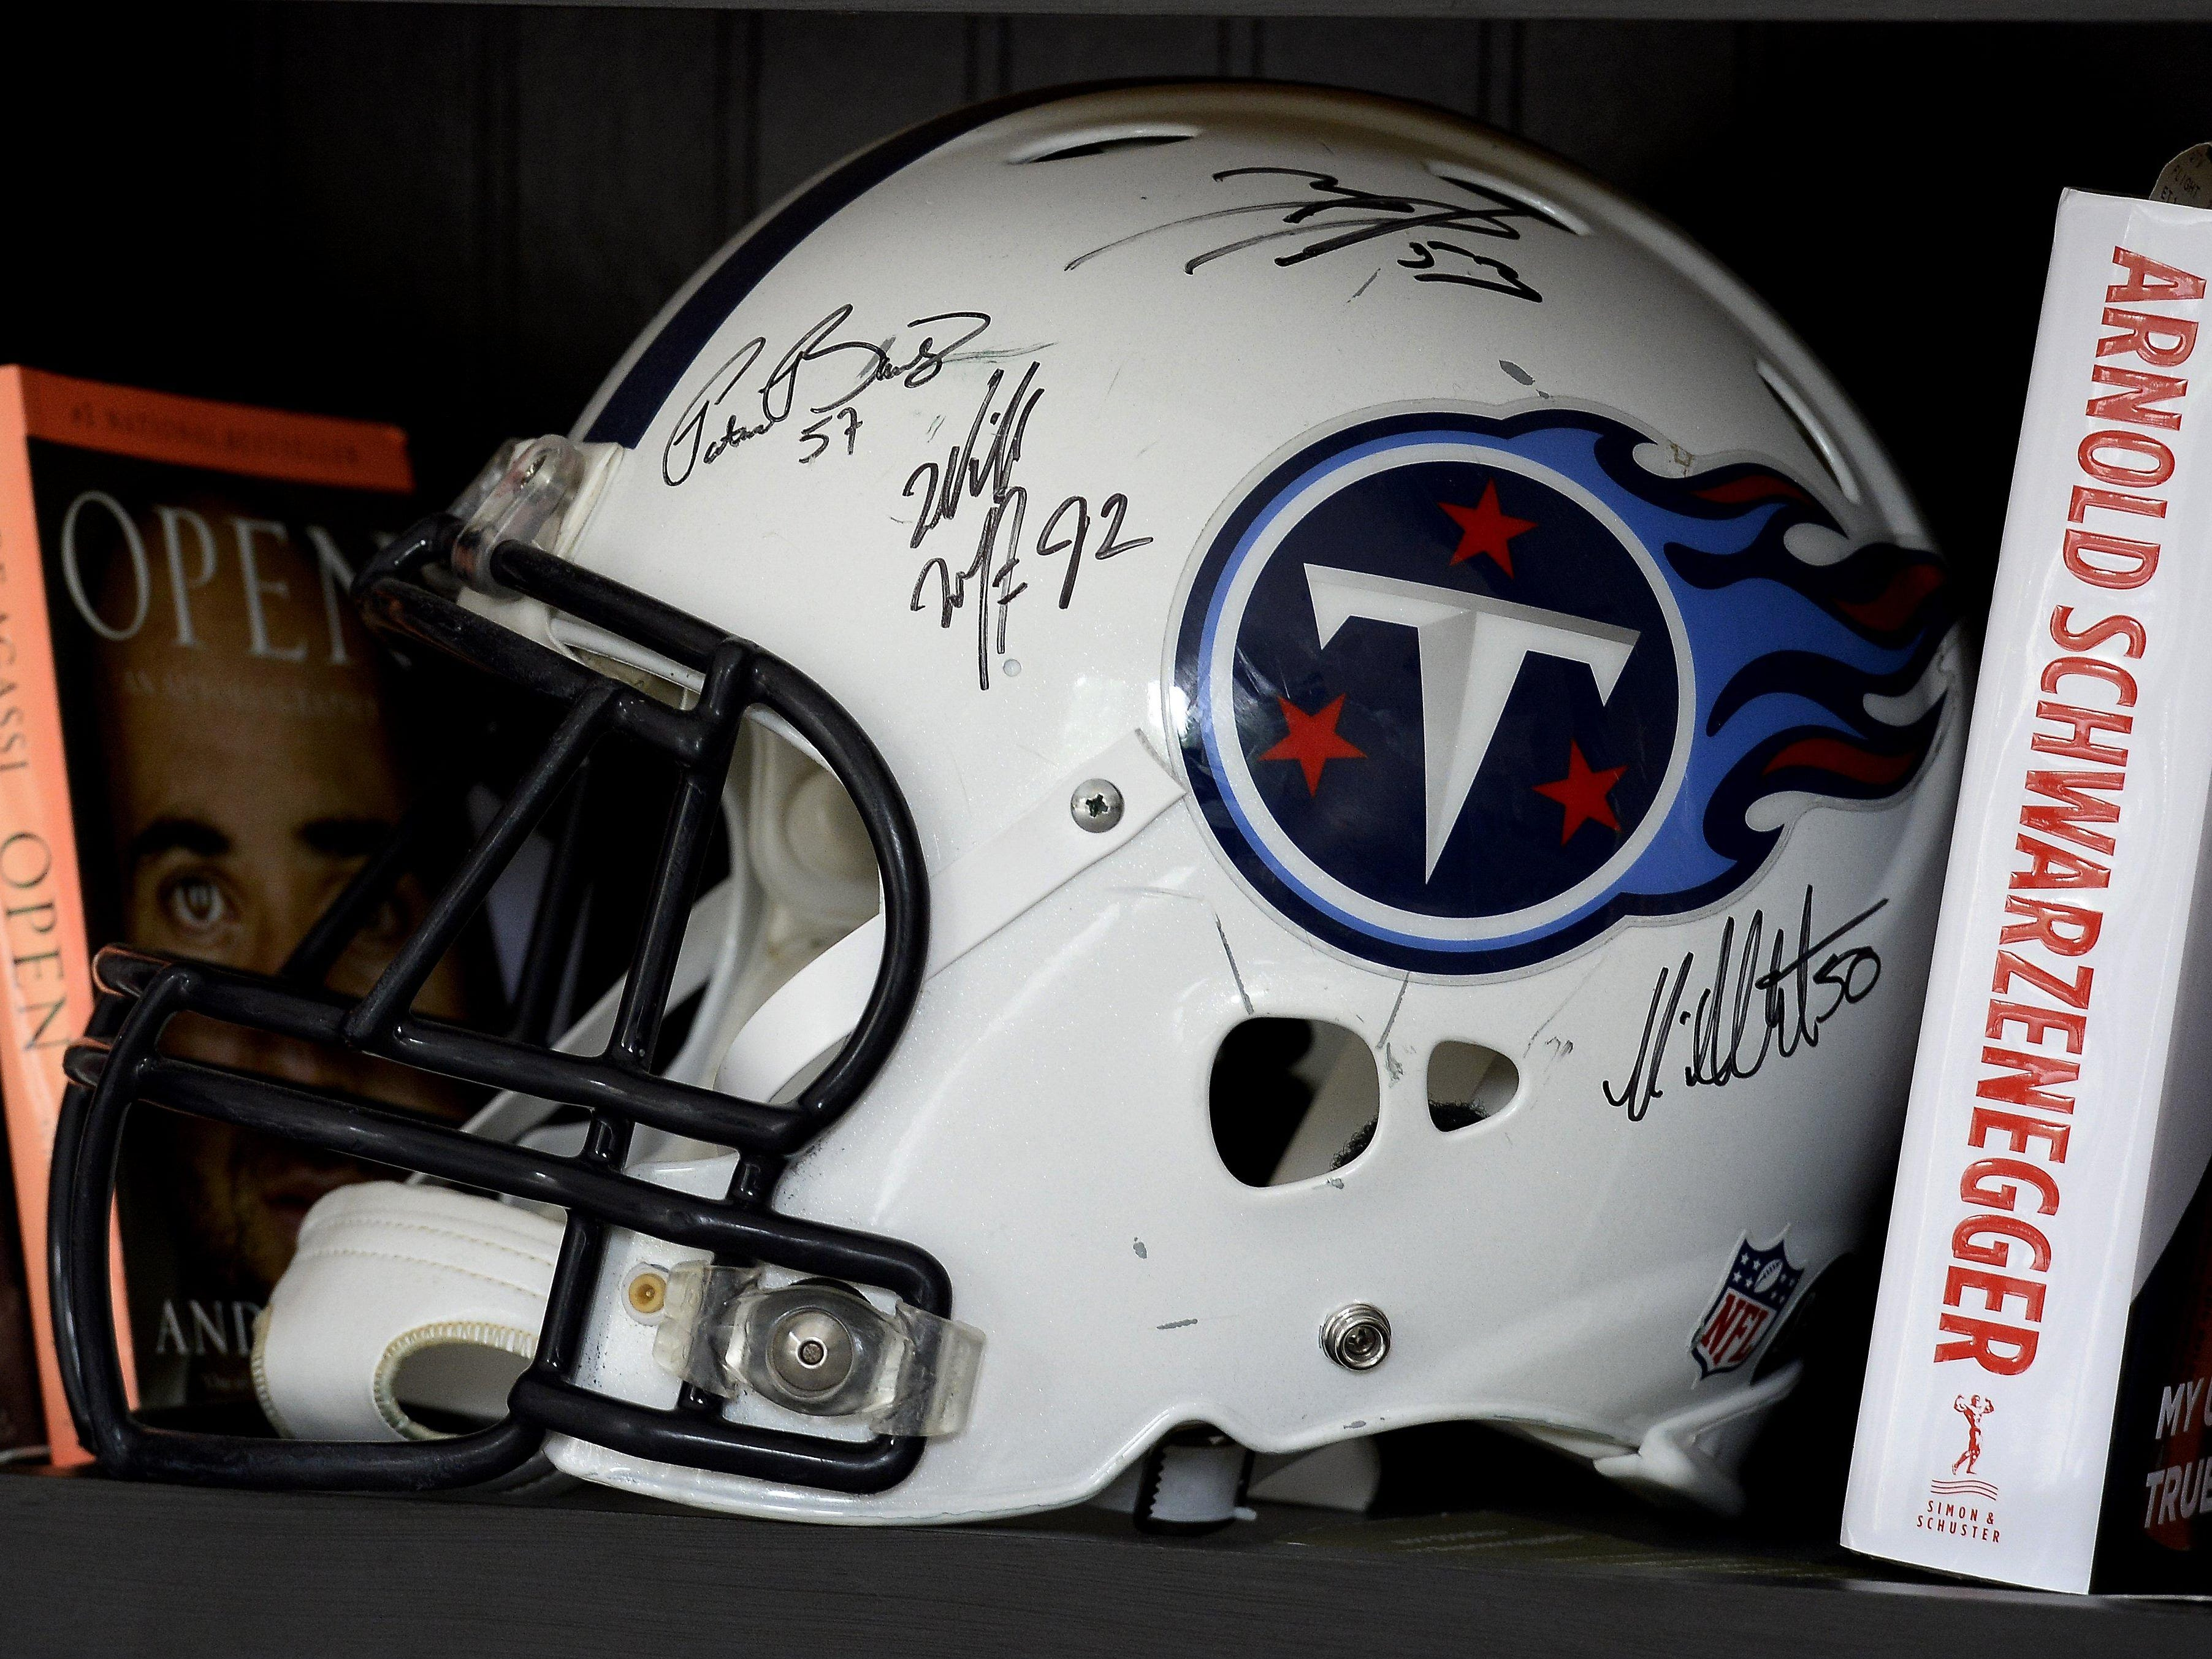 An autographed helmet from the Tennessee Titans is on a bookshelf at Shaw's home. The linebacker finished his NFL career as a Titan.